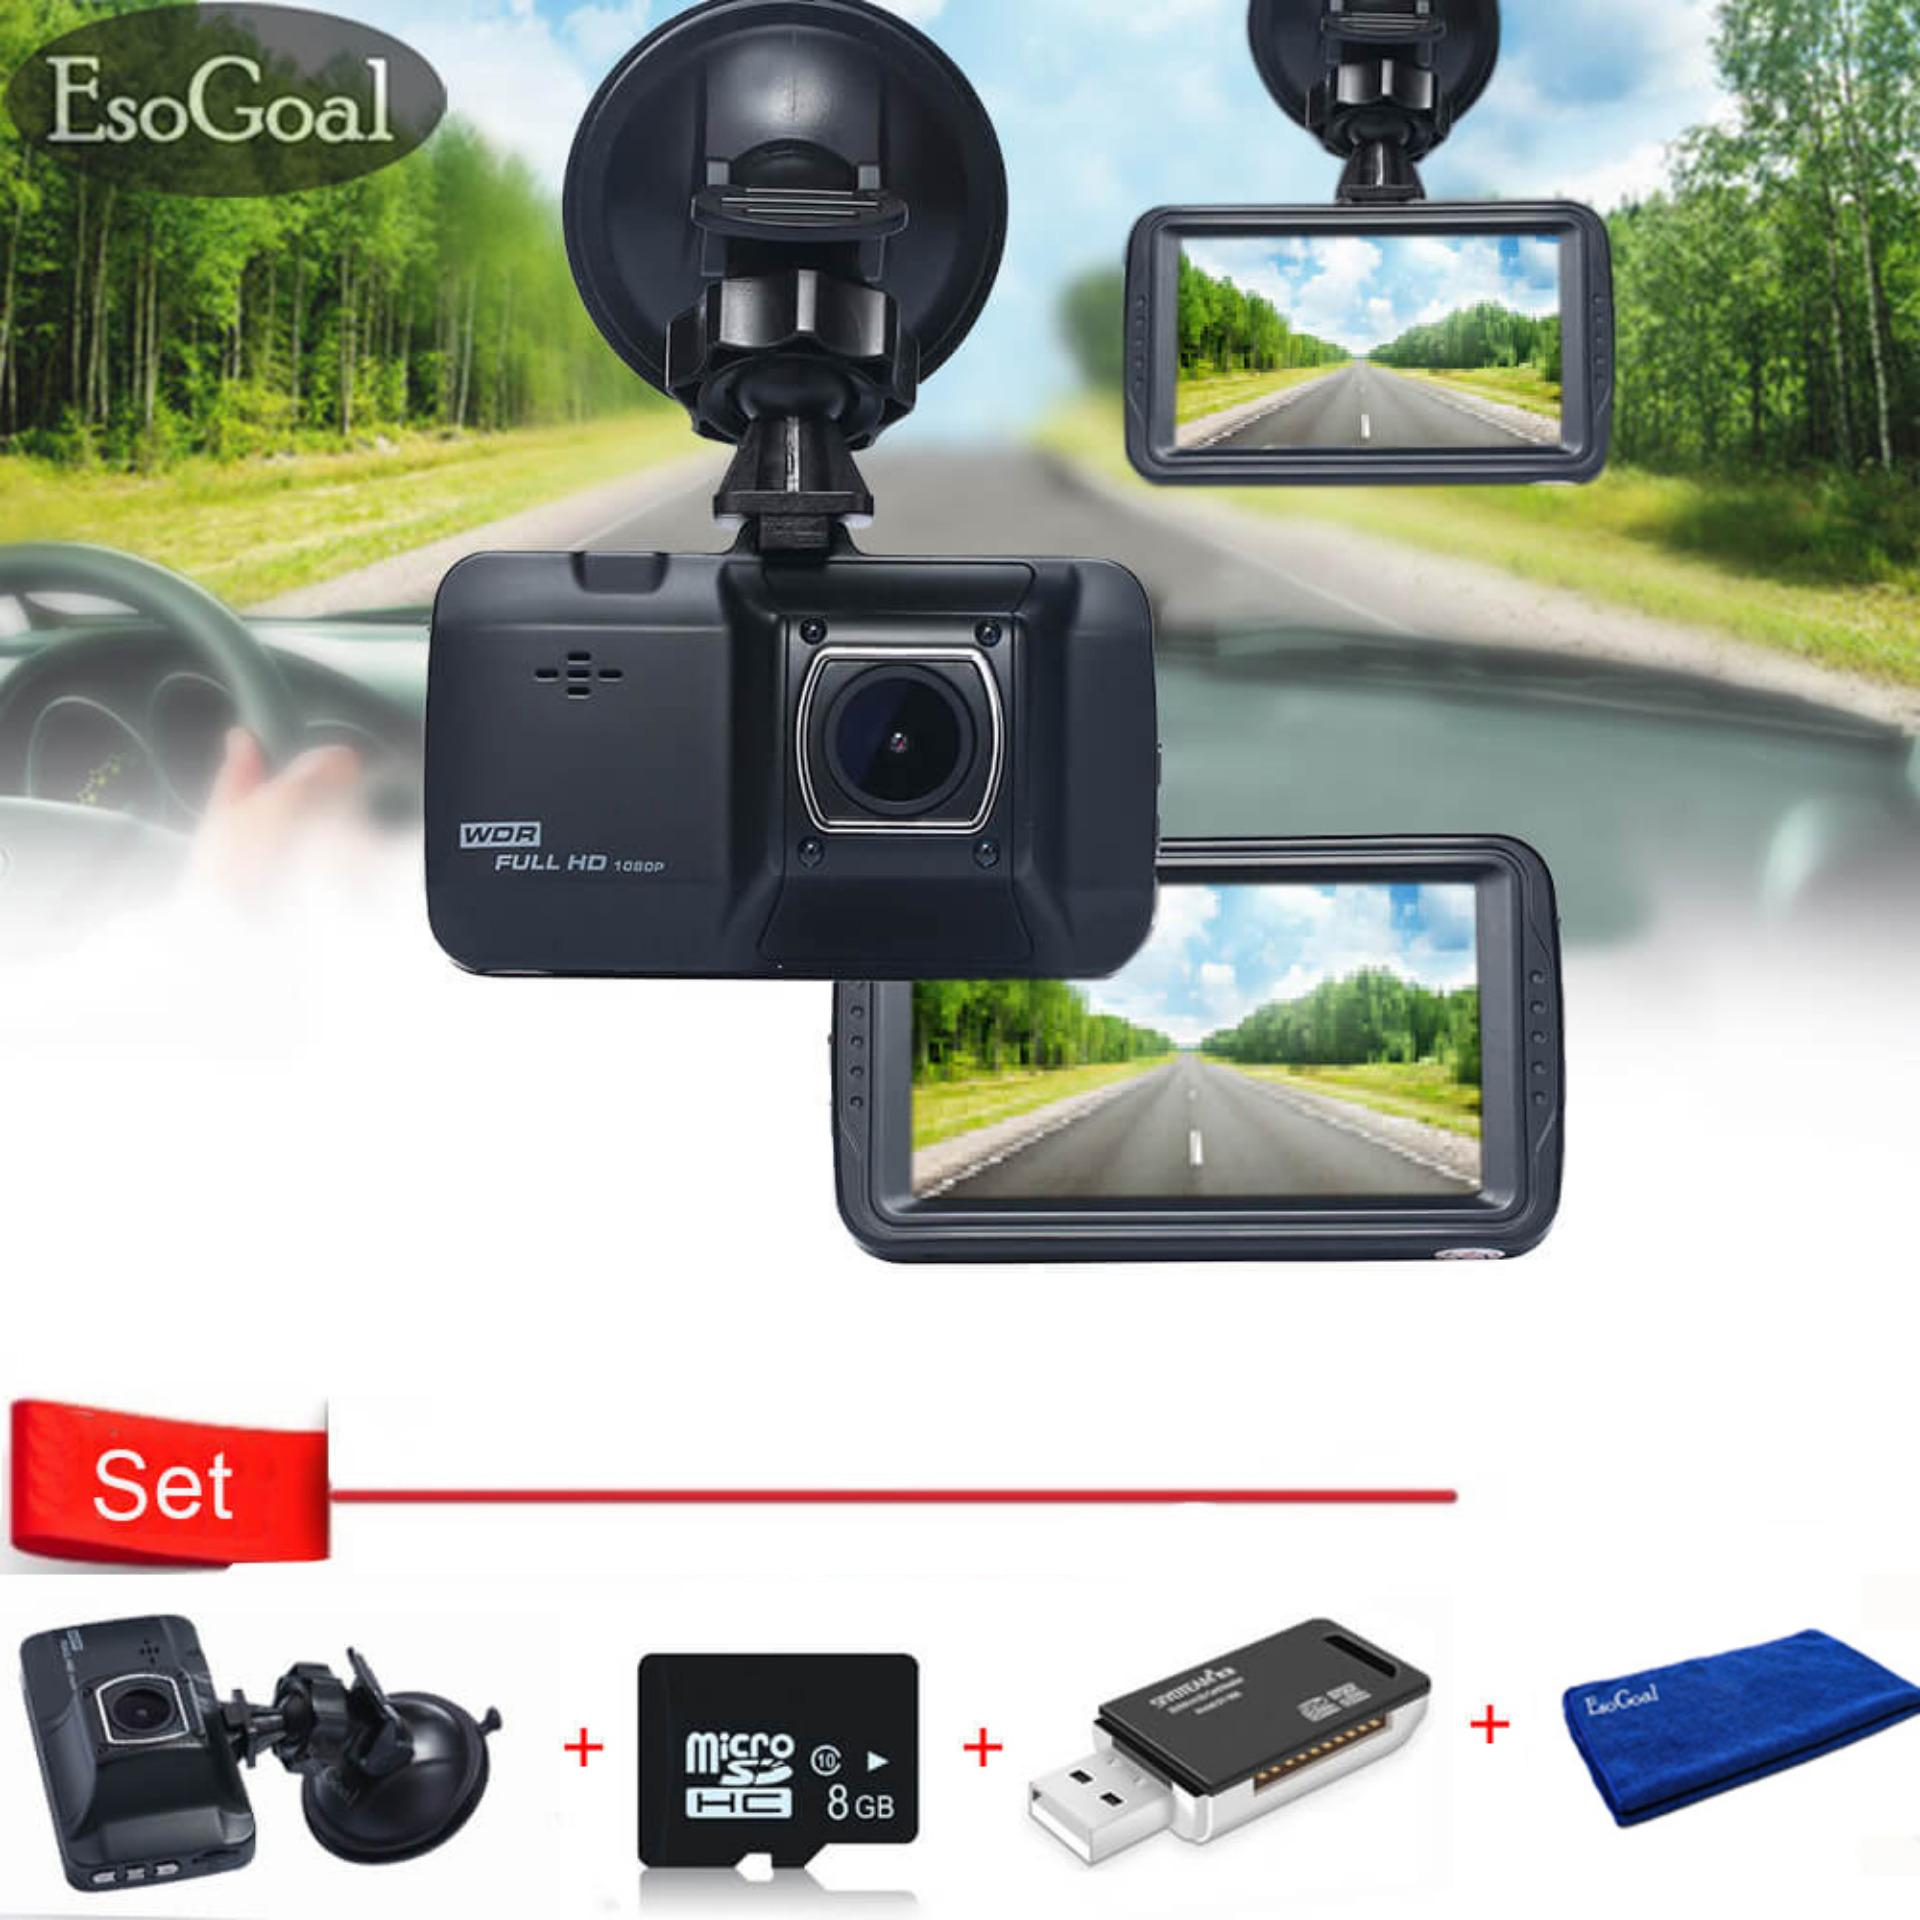 Toko Esogoal 3 Ir Light Night Vision 1080P 120 Car Dvr On Dash Video Recorder G Sensor Vehicle Camera And Micro C 10 8G Memory Card And Usb 2 Sd Card Reader Di Tiongkok